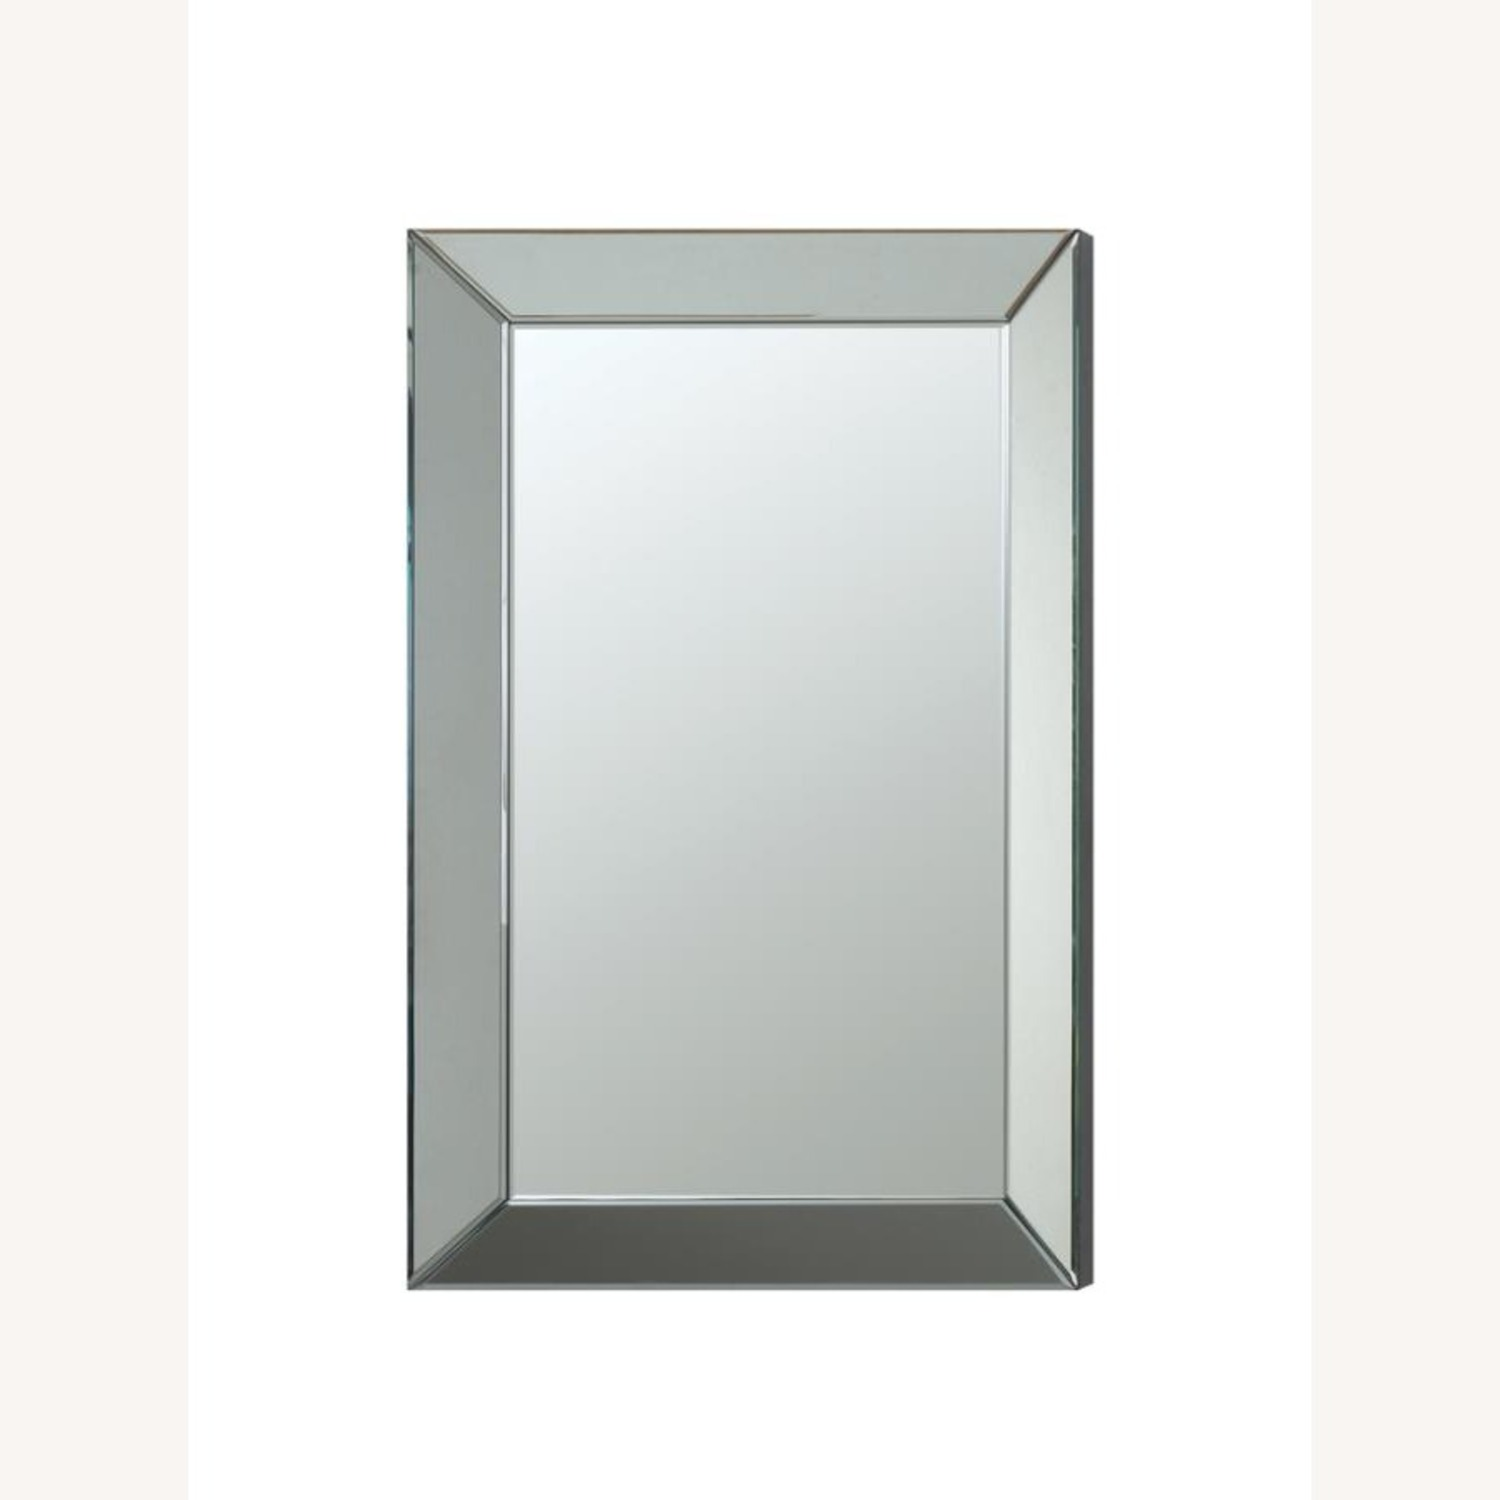 Rectangular Clear Mirror W/ Beveled Edges - image-1